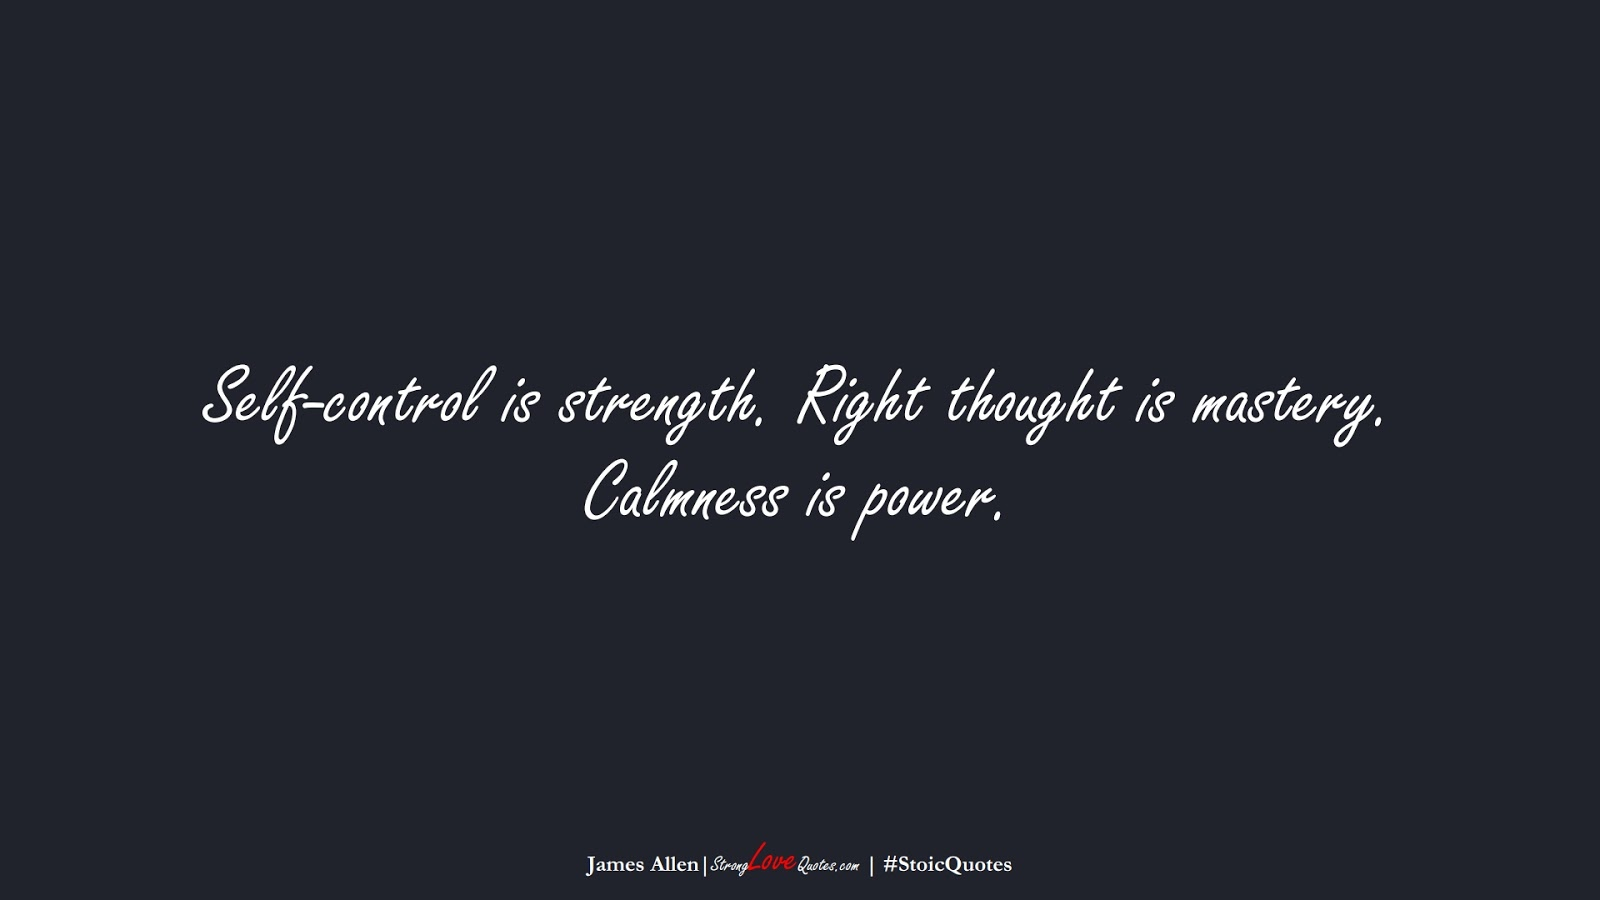 Self-control is strength. Right thought is mastery. Calmness is power. (James Allen);  #StoicQuotes